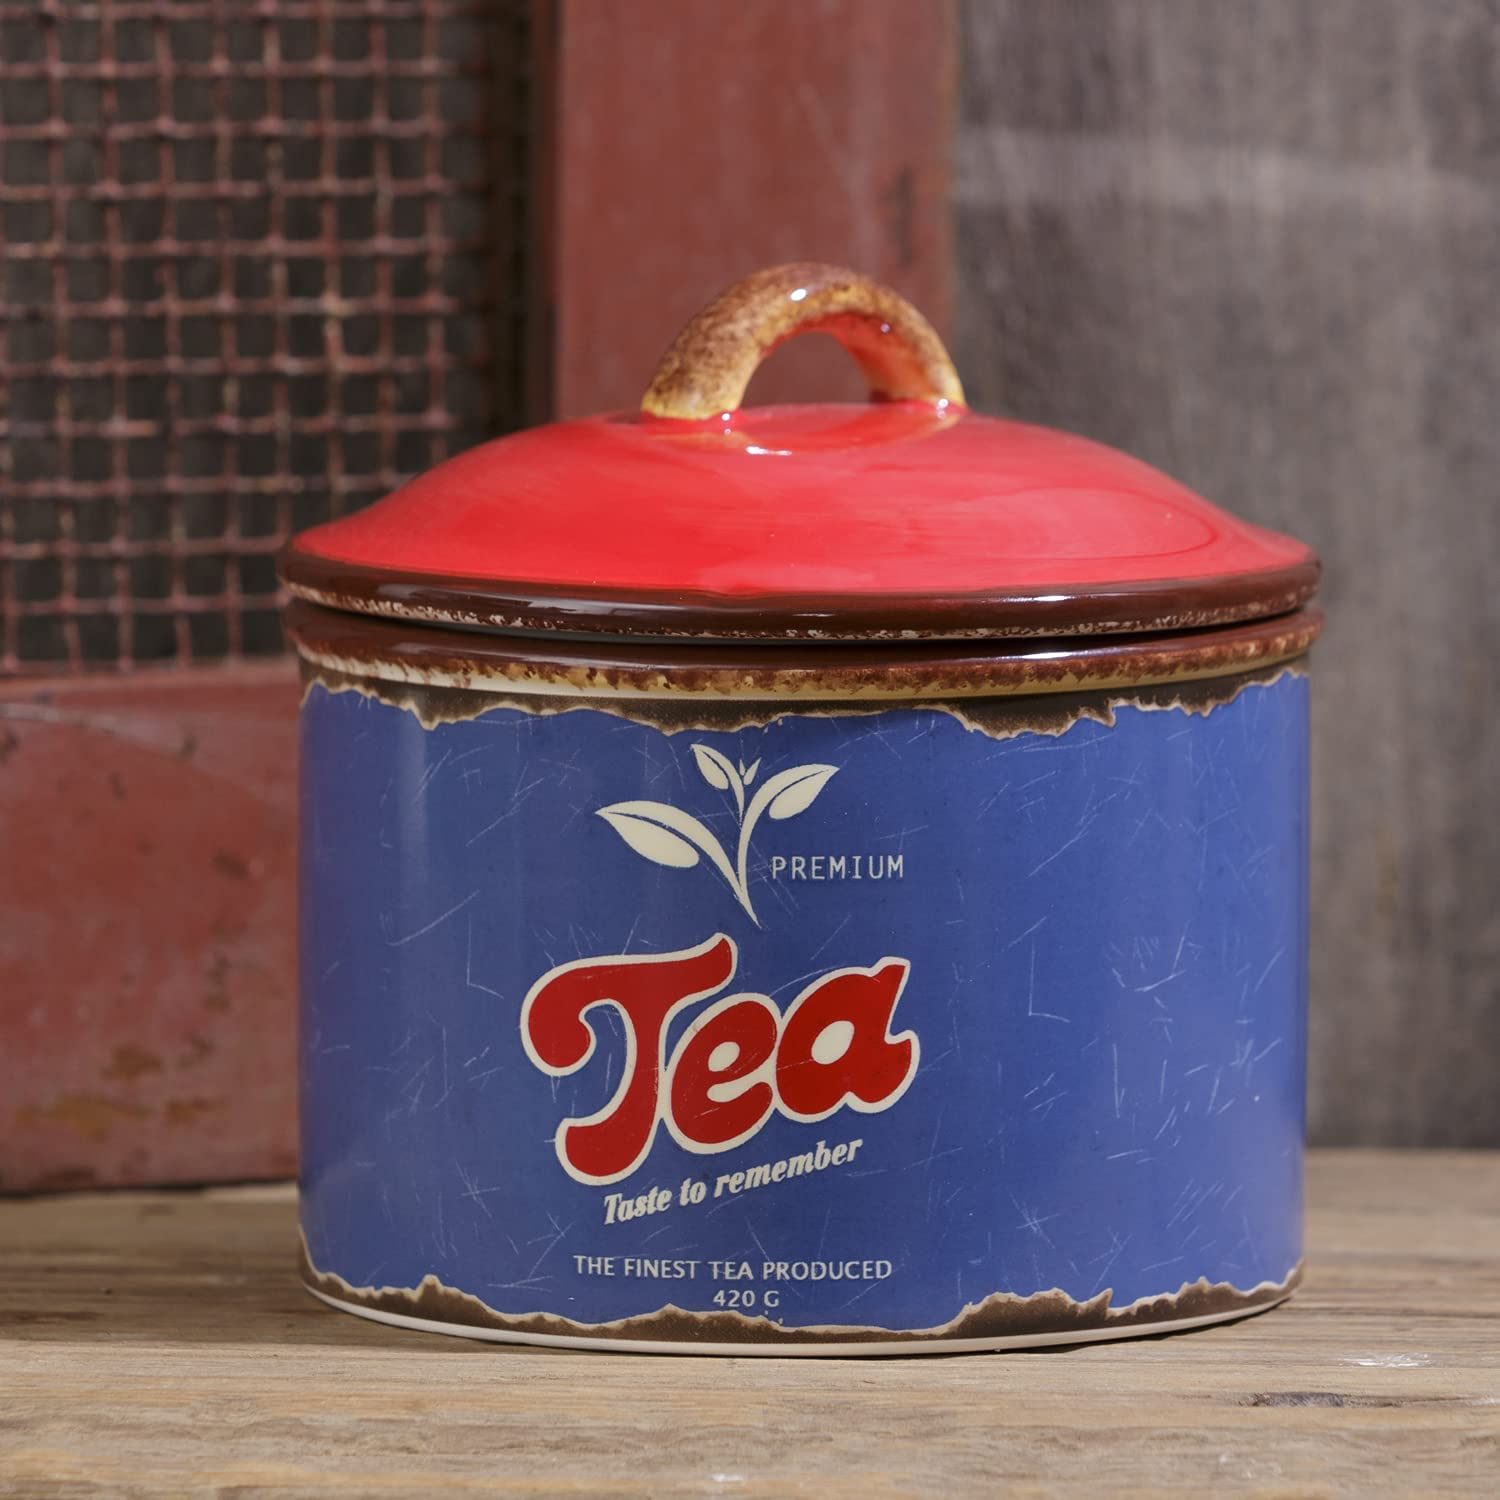 Decorative 5.5-Inch Vintage Ceramic Tea Canister with Lid - Retro Farmhouse Tea Container Jar - Rustic Country Farmhouse Kitchen Counter Storage Coffee Bar Accessory for Home Decor